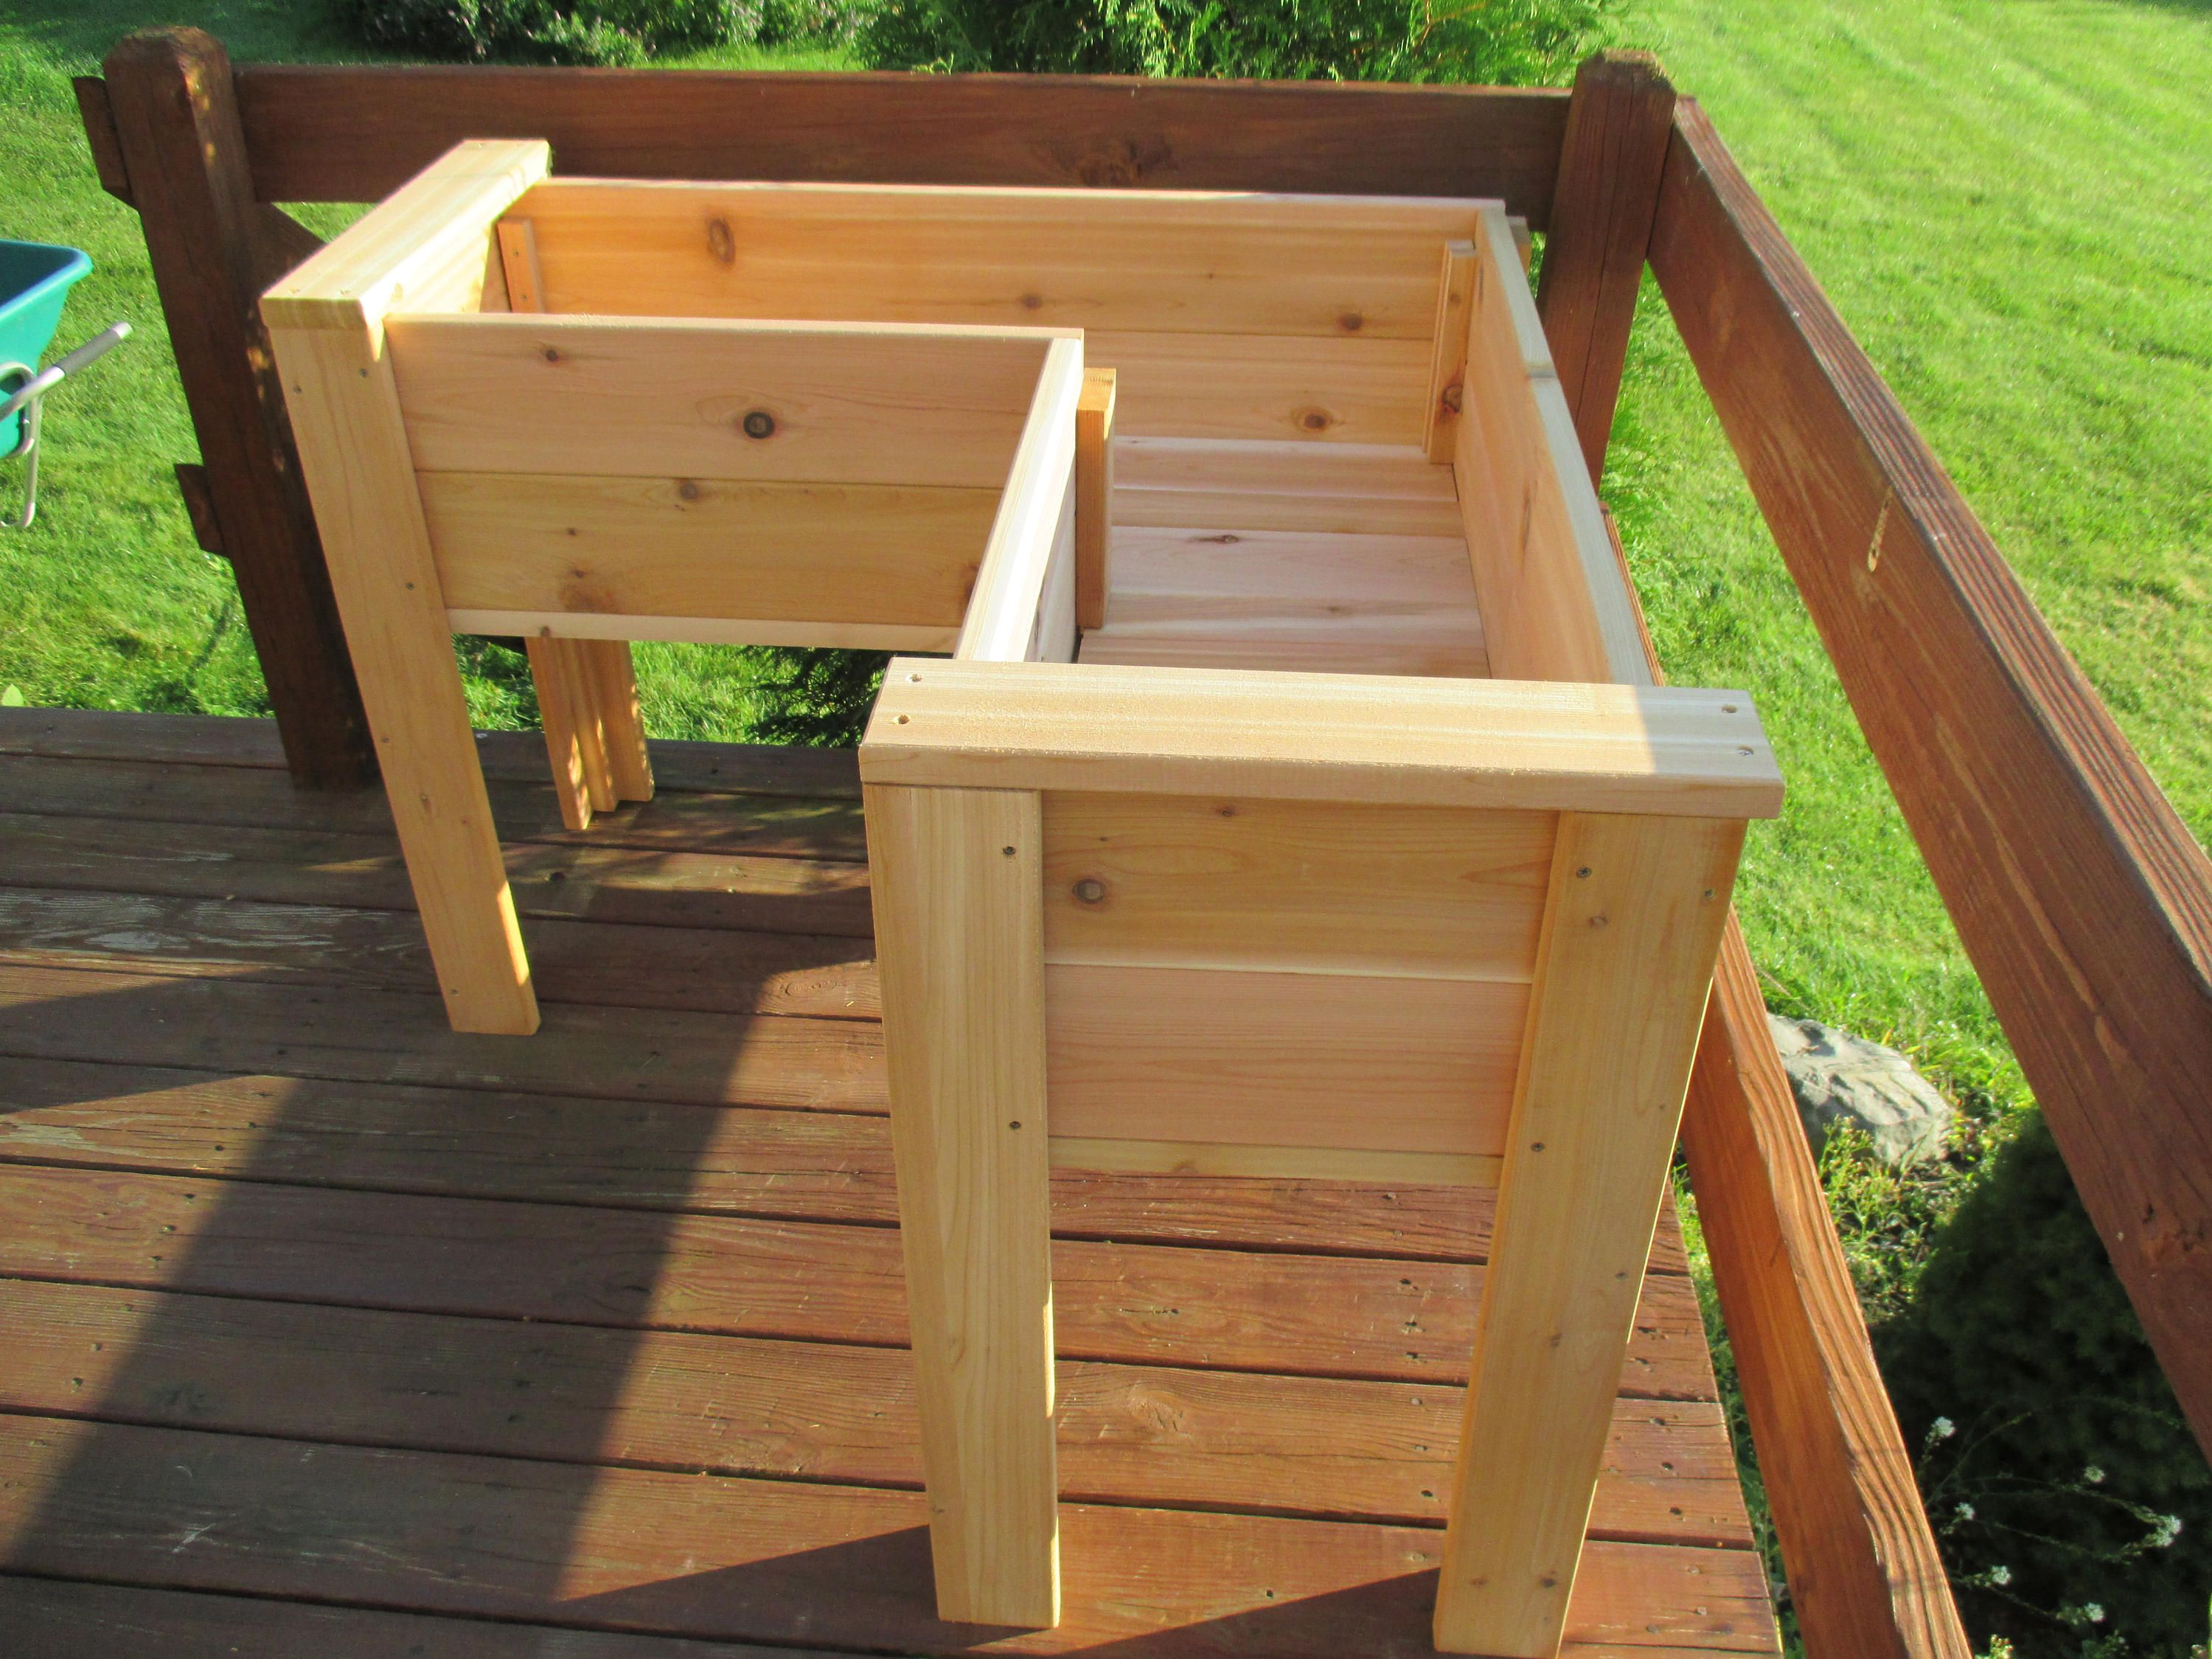 This Diy Elevated Planter Box Is Raised Up Off The Ground So You Can Have Your This Diy Elevated P Elevated Planter Box Garden Planter Boxes Garden Boxes Diy